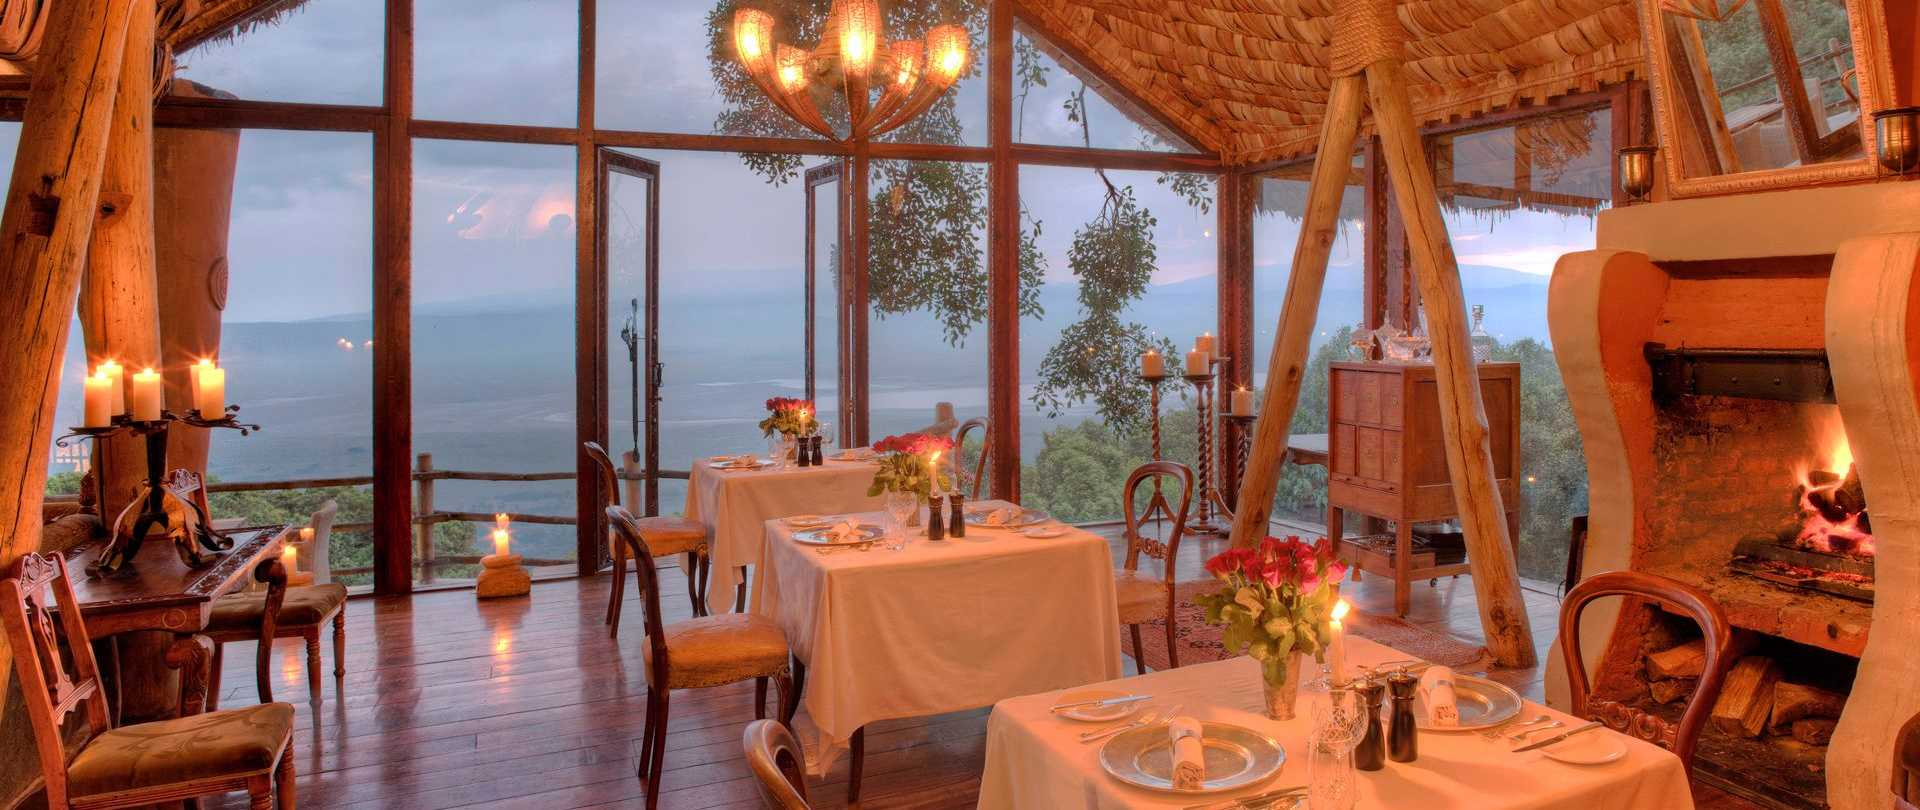 KT-Ngorongoro-Crater-Lodge